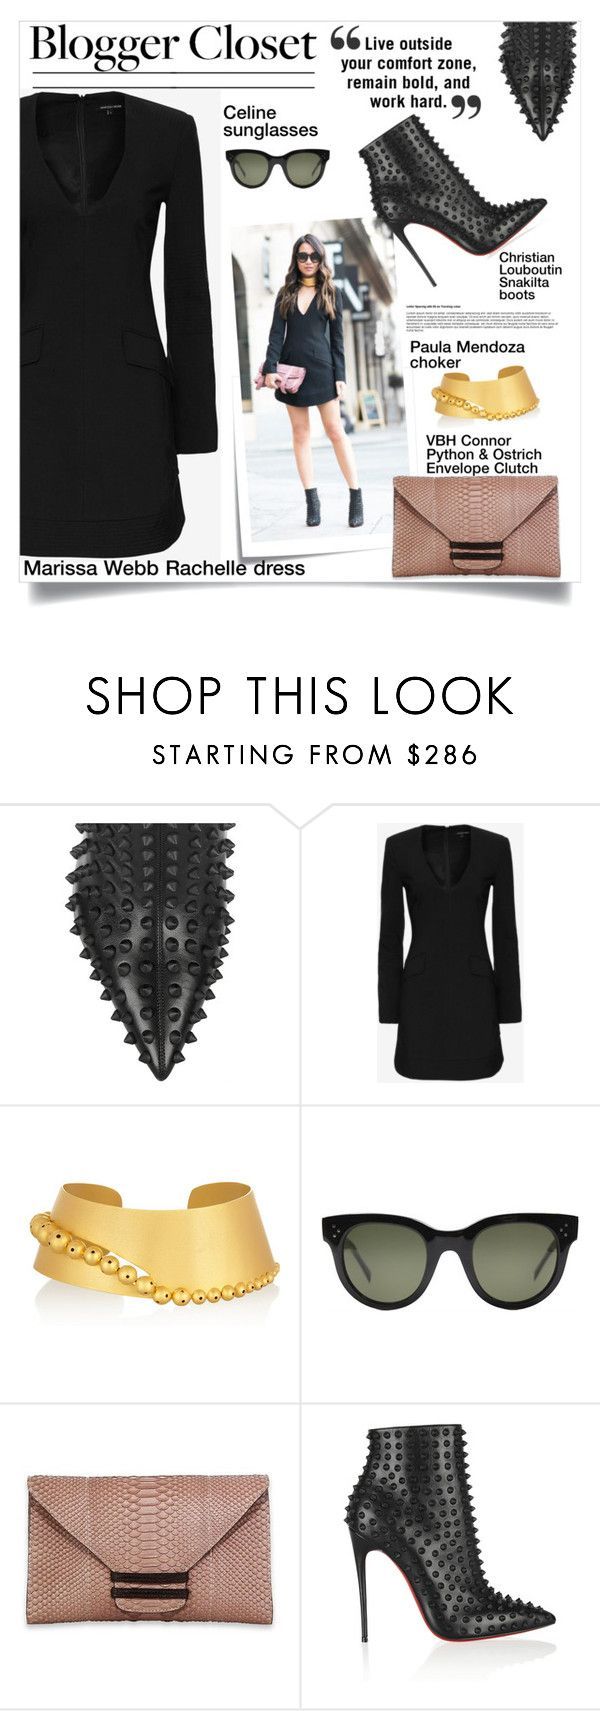 """LBD"" by lisamichele-cdxci ❤ liked on Polyvore featuring Christian Louboutin, Post-It, Marissa Webb, Paula Mendoza, CÉLINE, VBH, BloggerStyle, LBD, wendyslookbook and WendyNguyen"